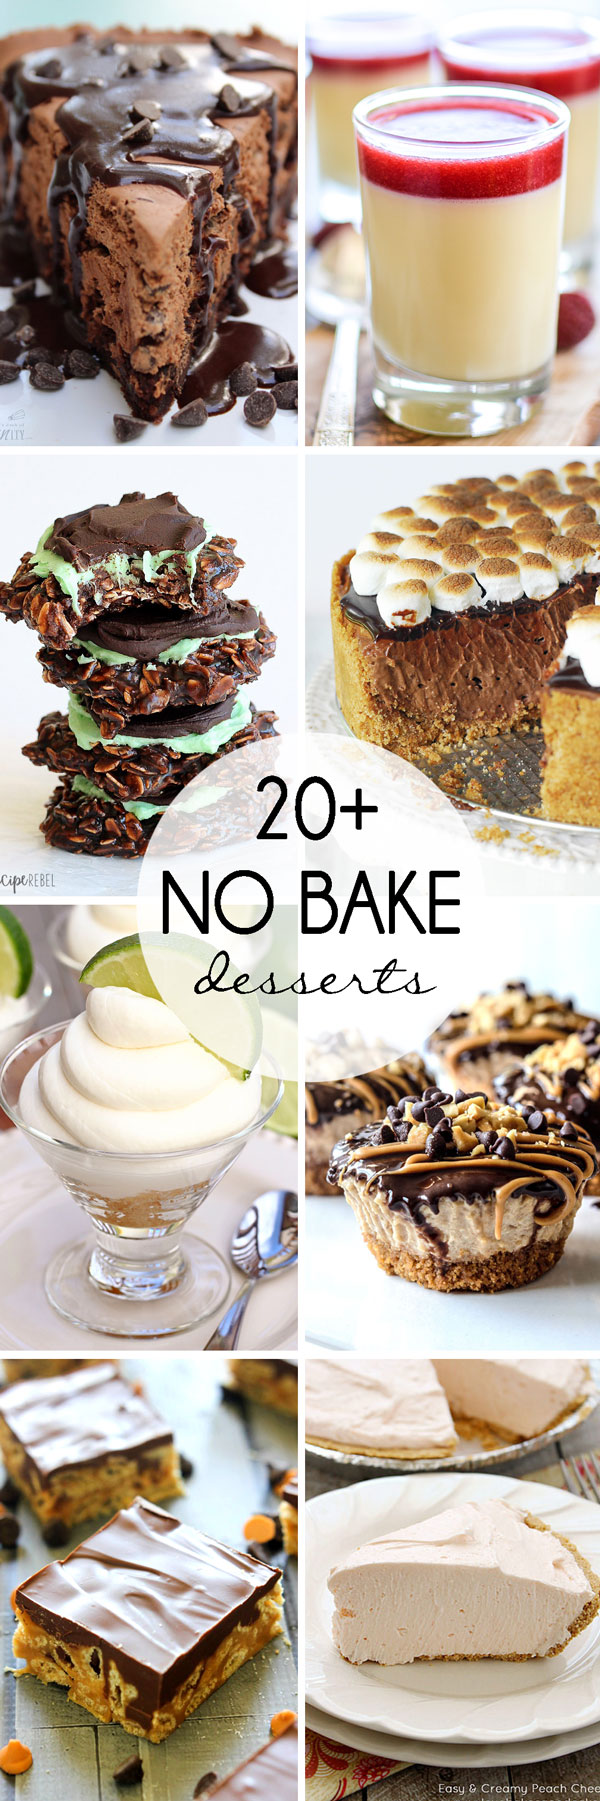 20+ No Bake Desserts for Summer: load up on these sweet treats to get you through the rest of summer that require no oven! | www.cookingandbeer.com